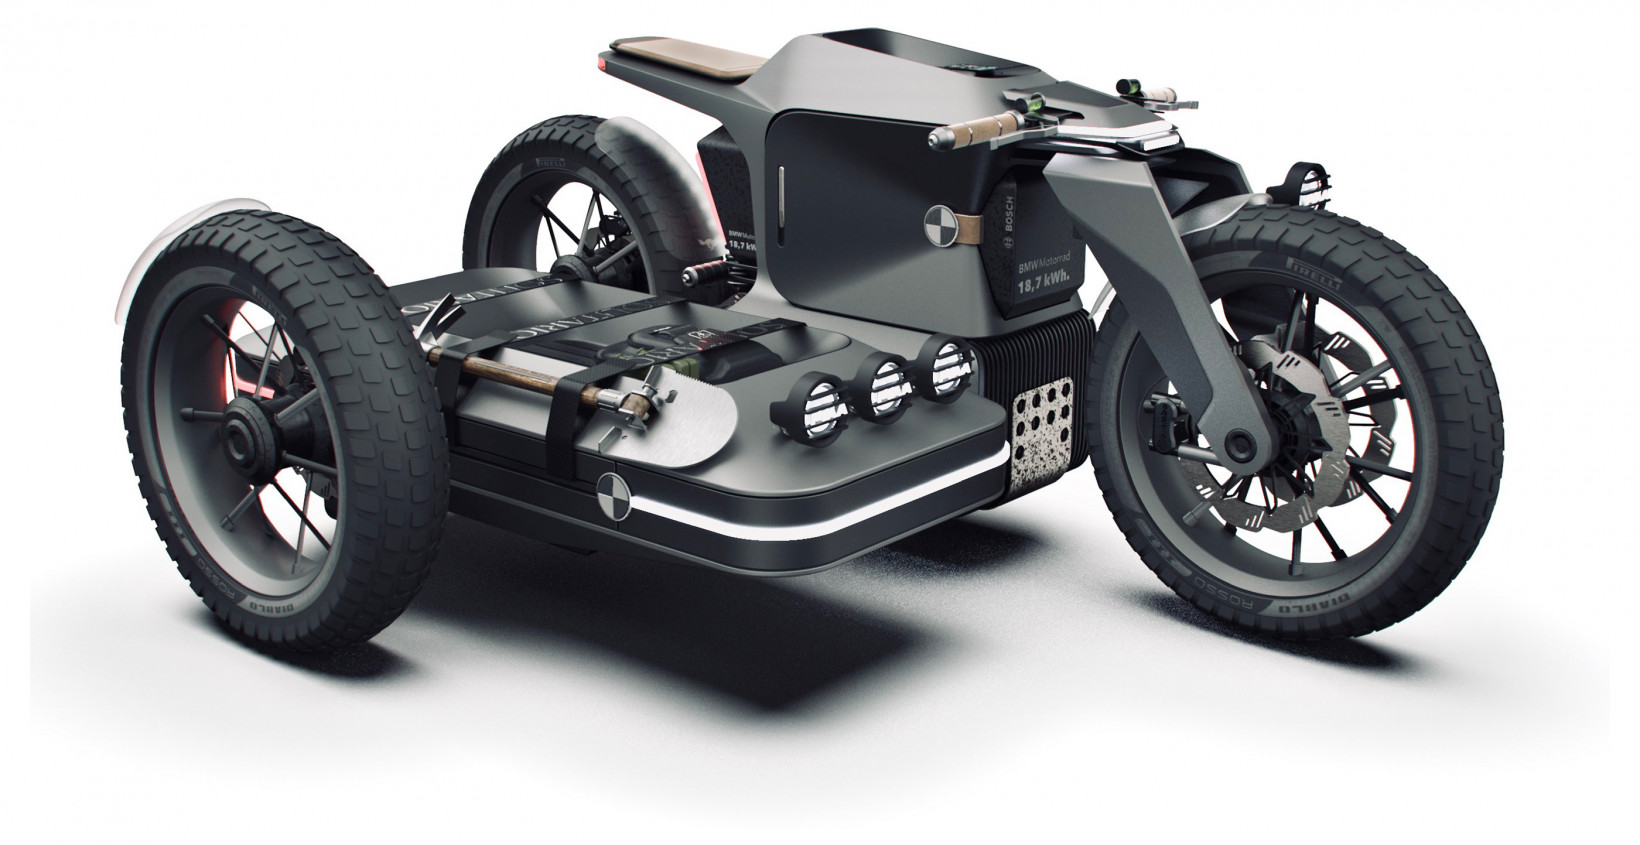 electric, suv, bike, sidecar, attachment, motorcycle